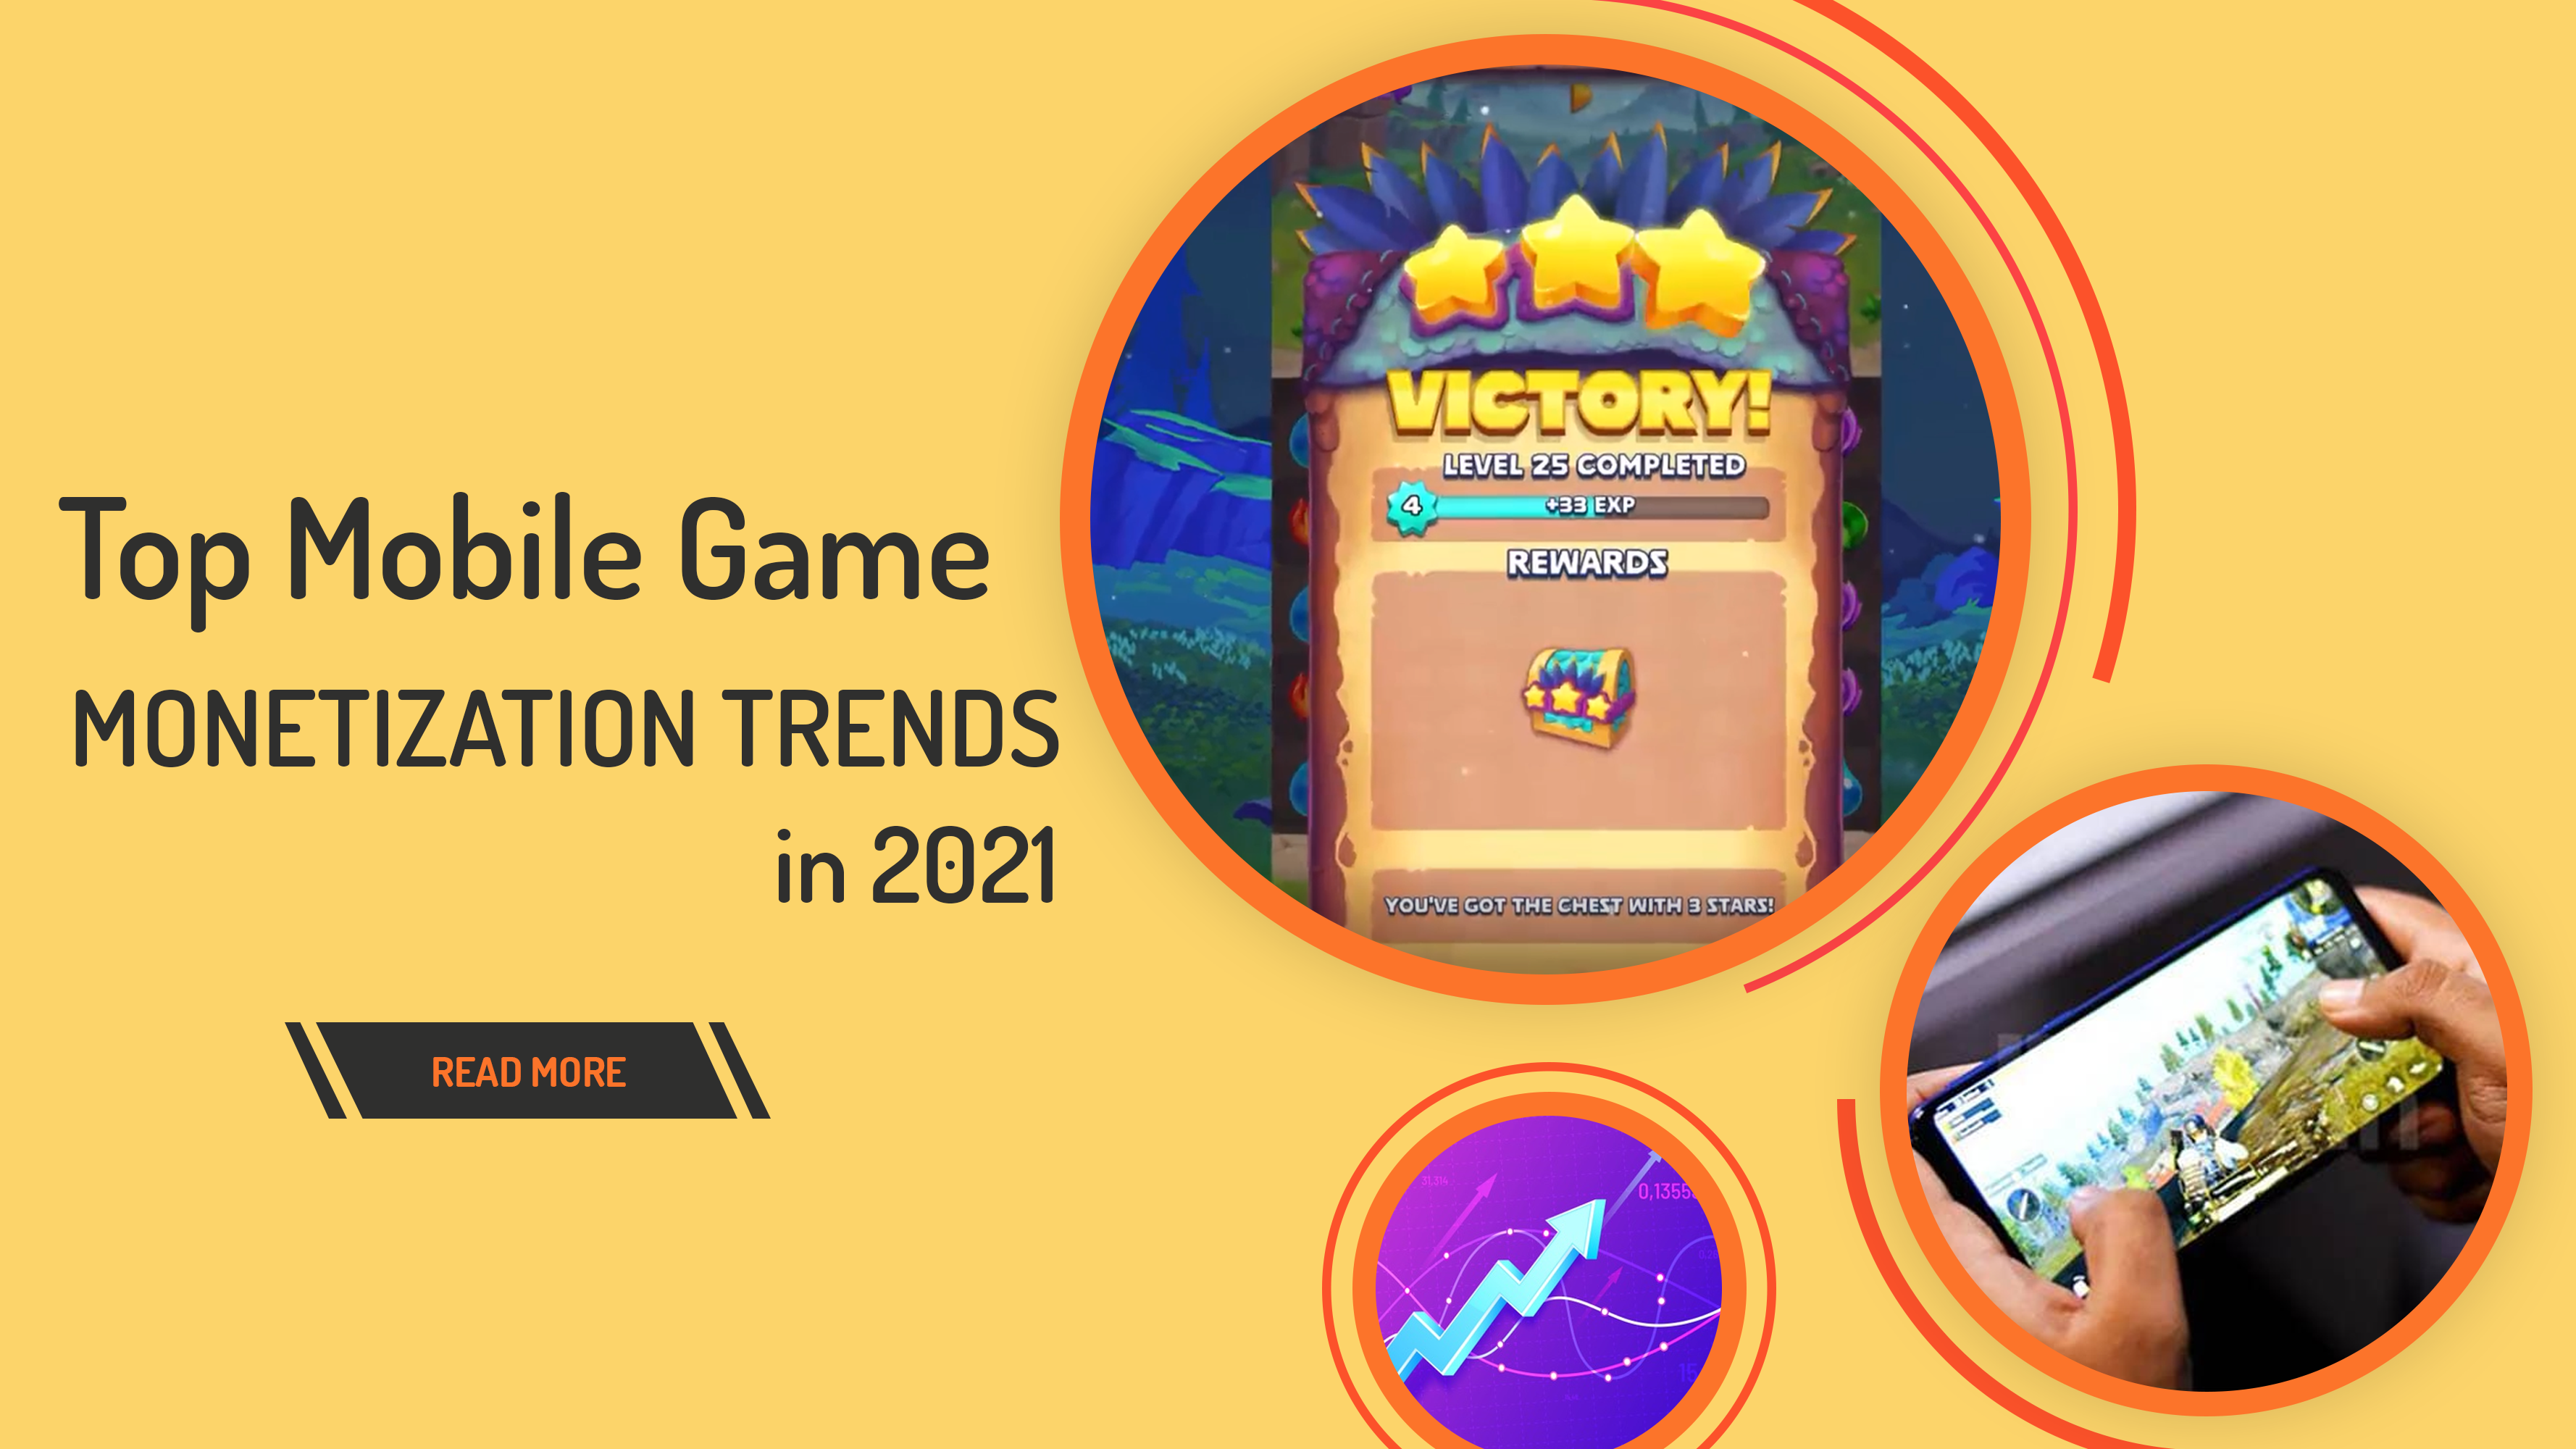 Top 4 Mobile Game Monetization Trends in 2021 banner